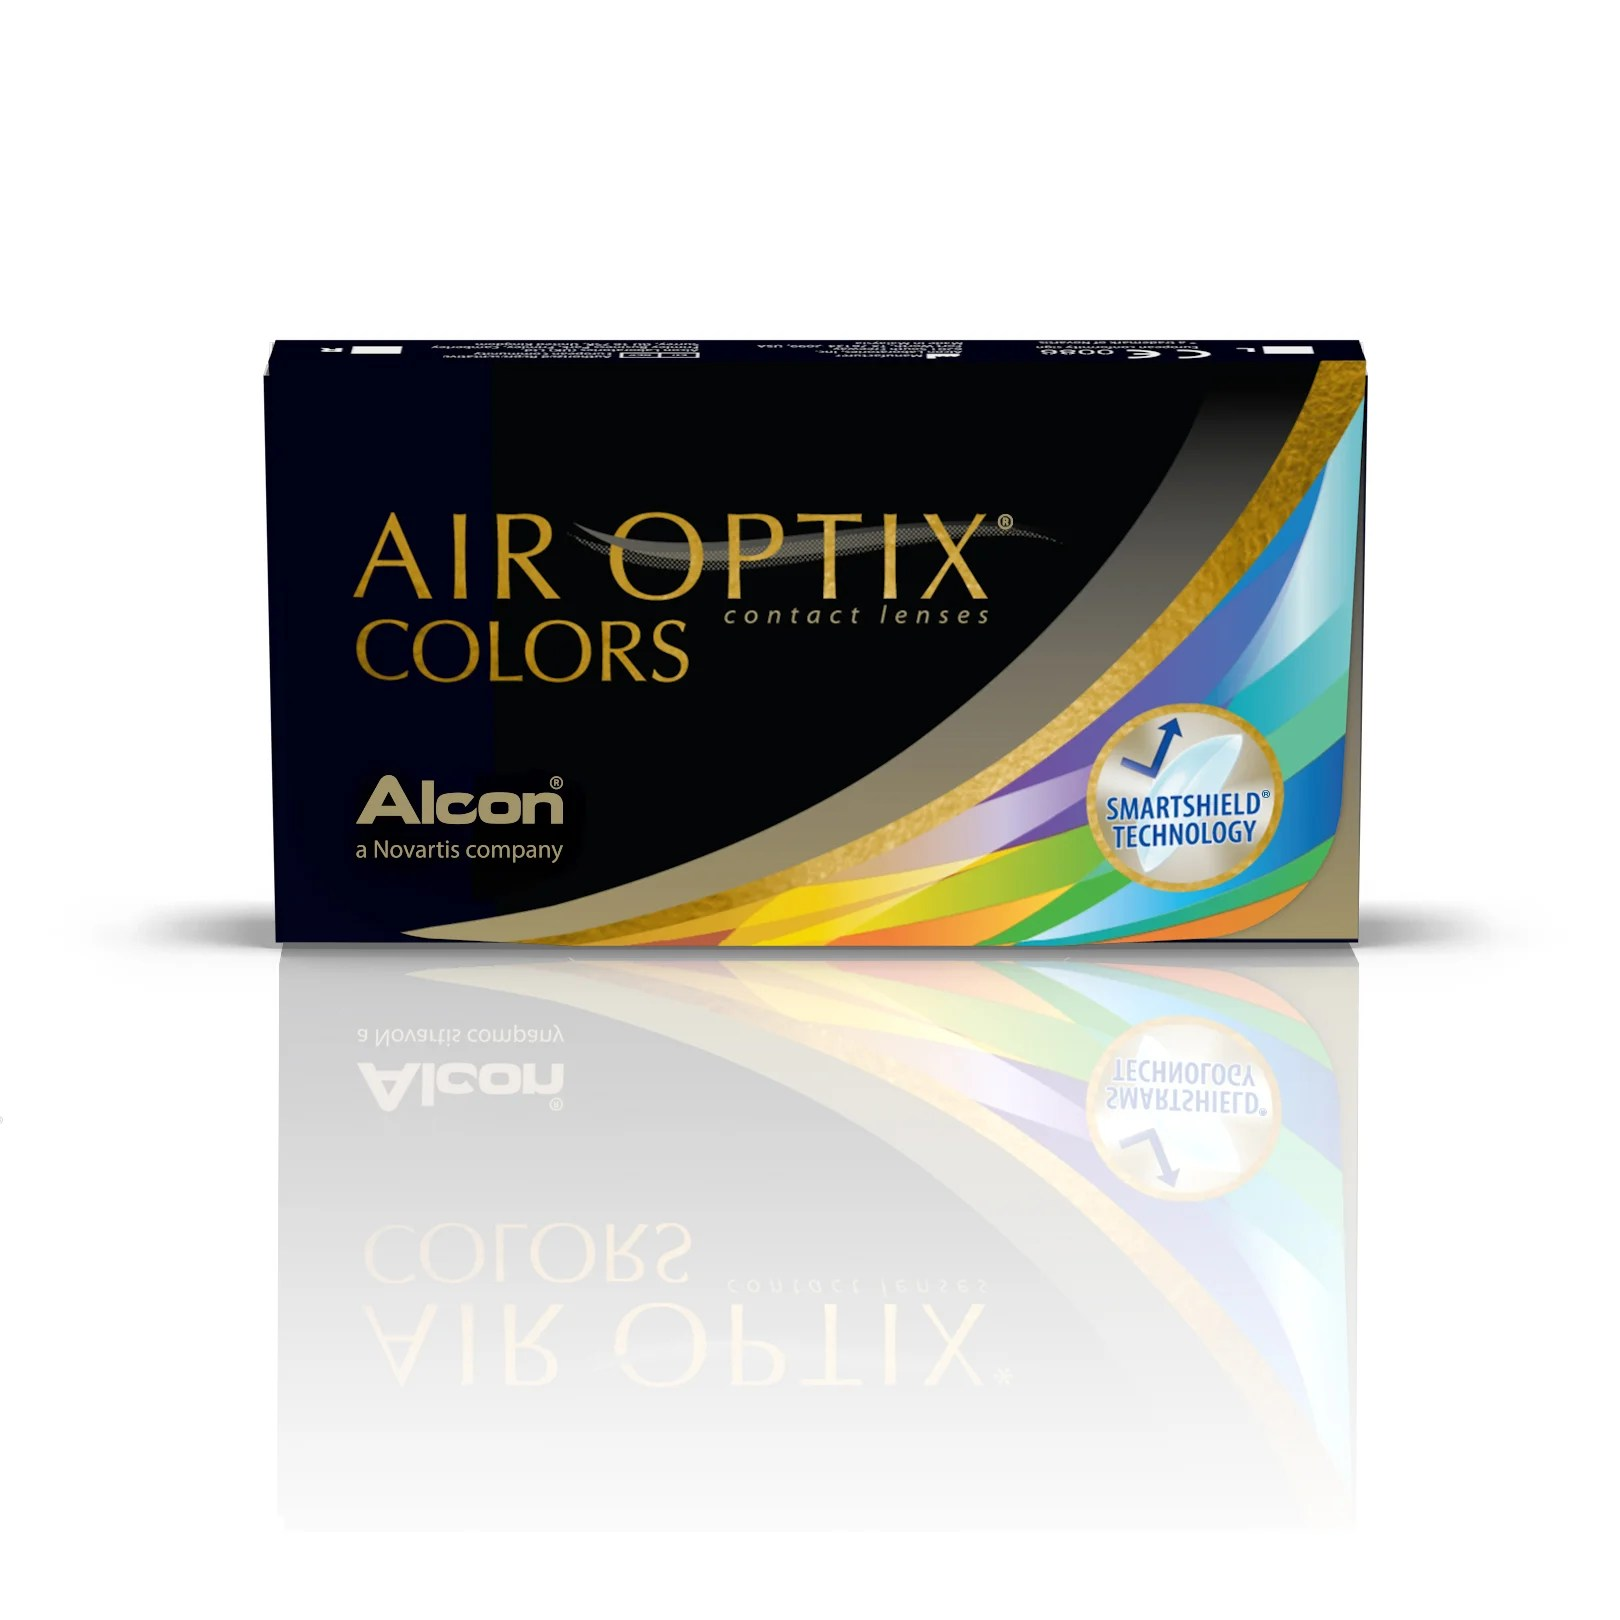 Air Optix Colors Contact Lenses only $83.00 or less.